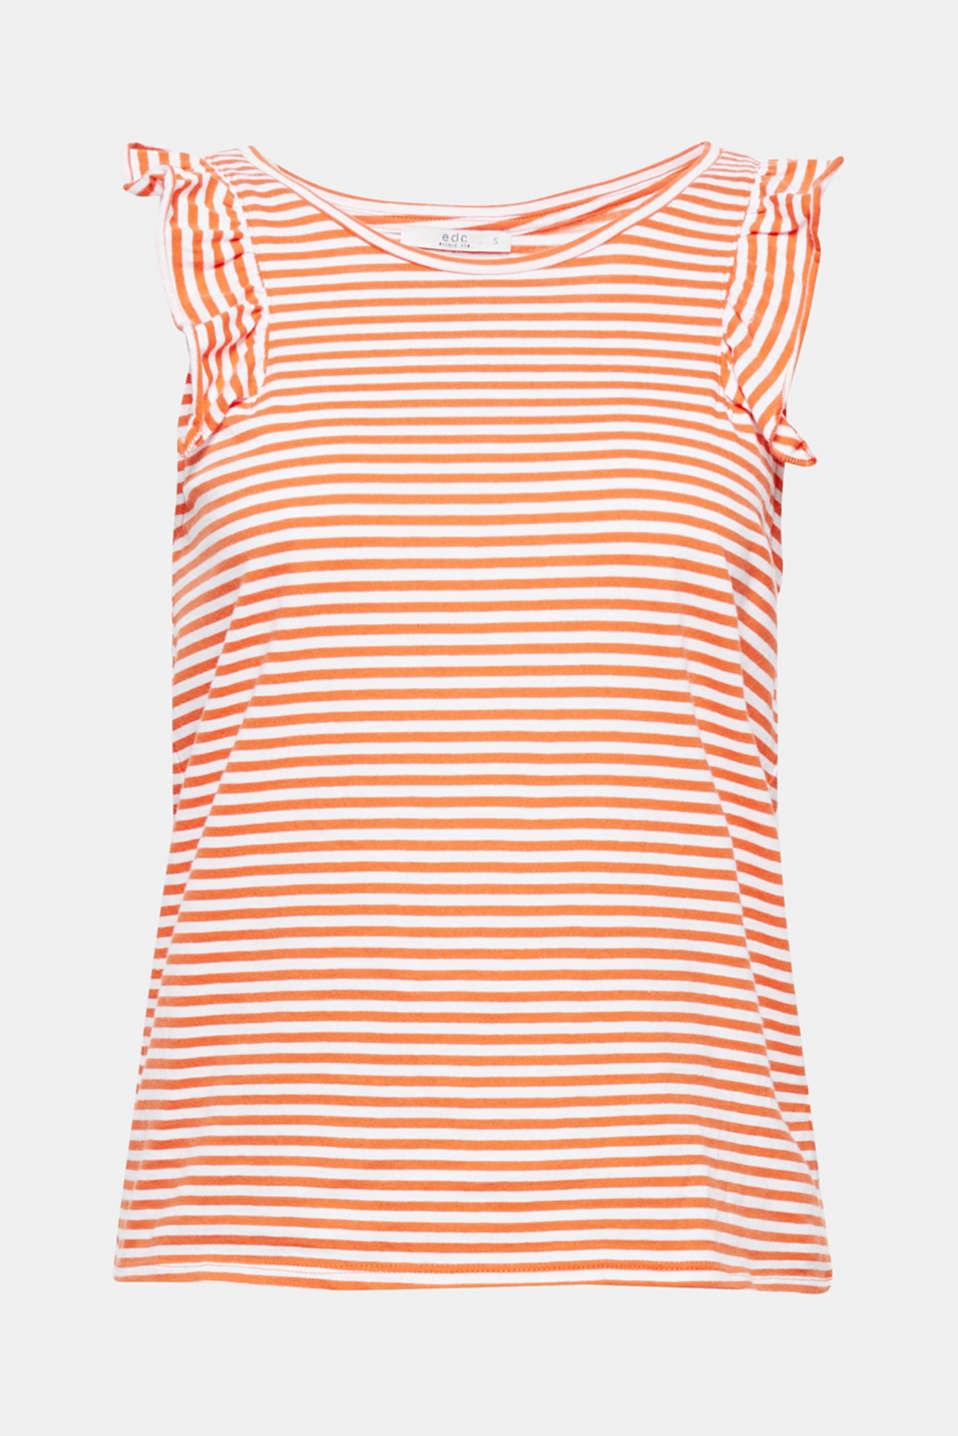 Nautical classic piece with pretty frills! This striped tank top gets a feminine touch from the frilled trim on both sleeves.